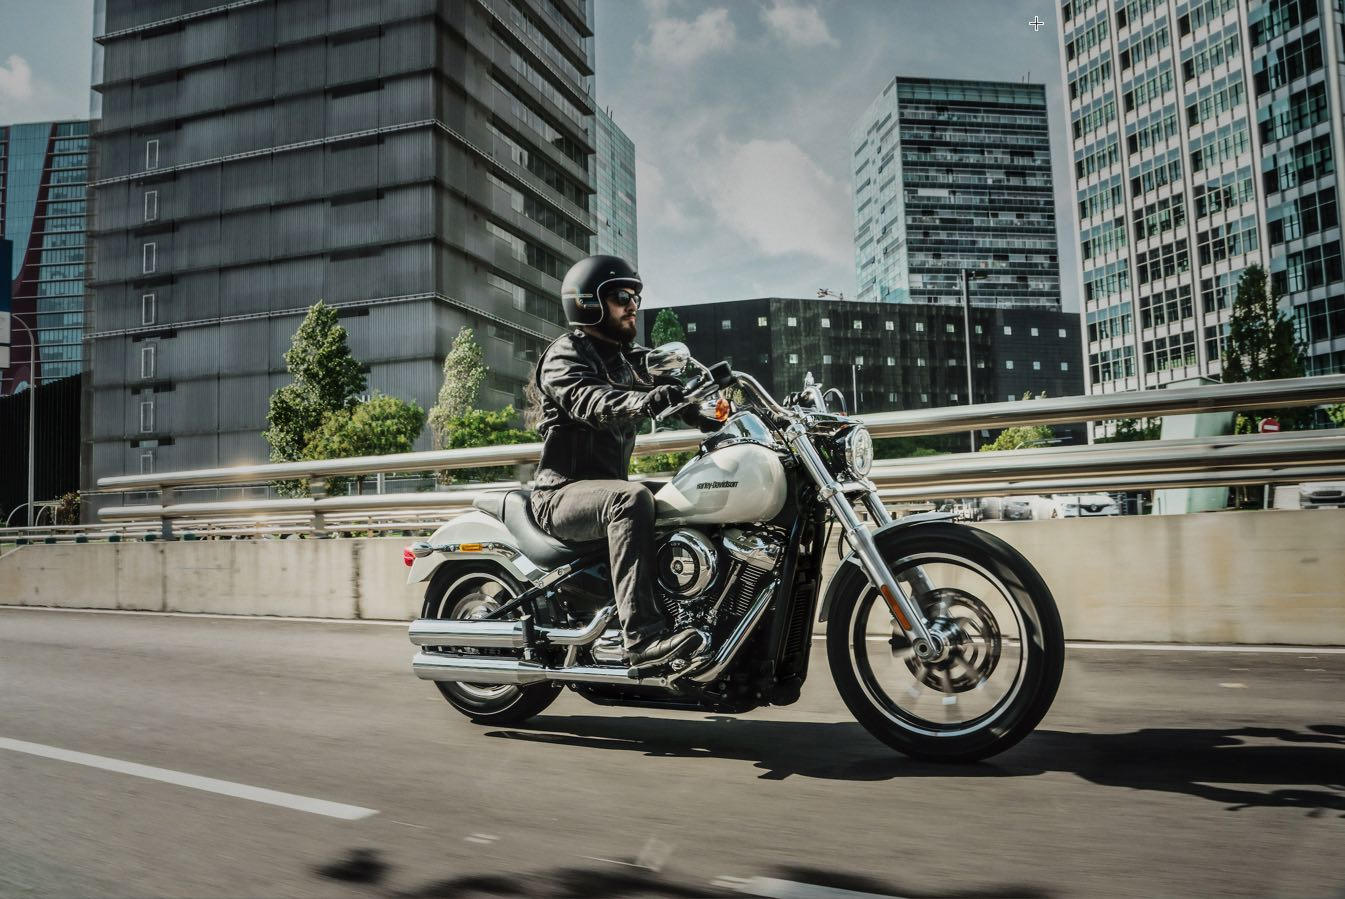 Peer-To-Peer Marketplace Focused Exclusively on Street Legal Motorcycle Rentals